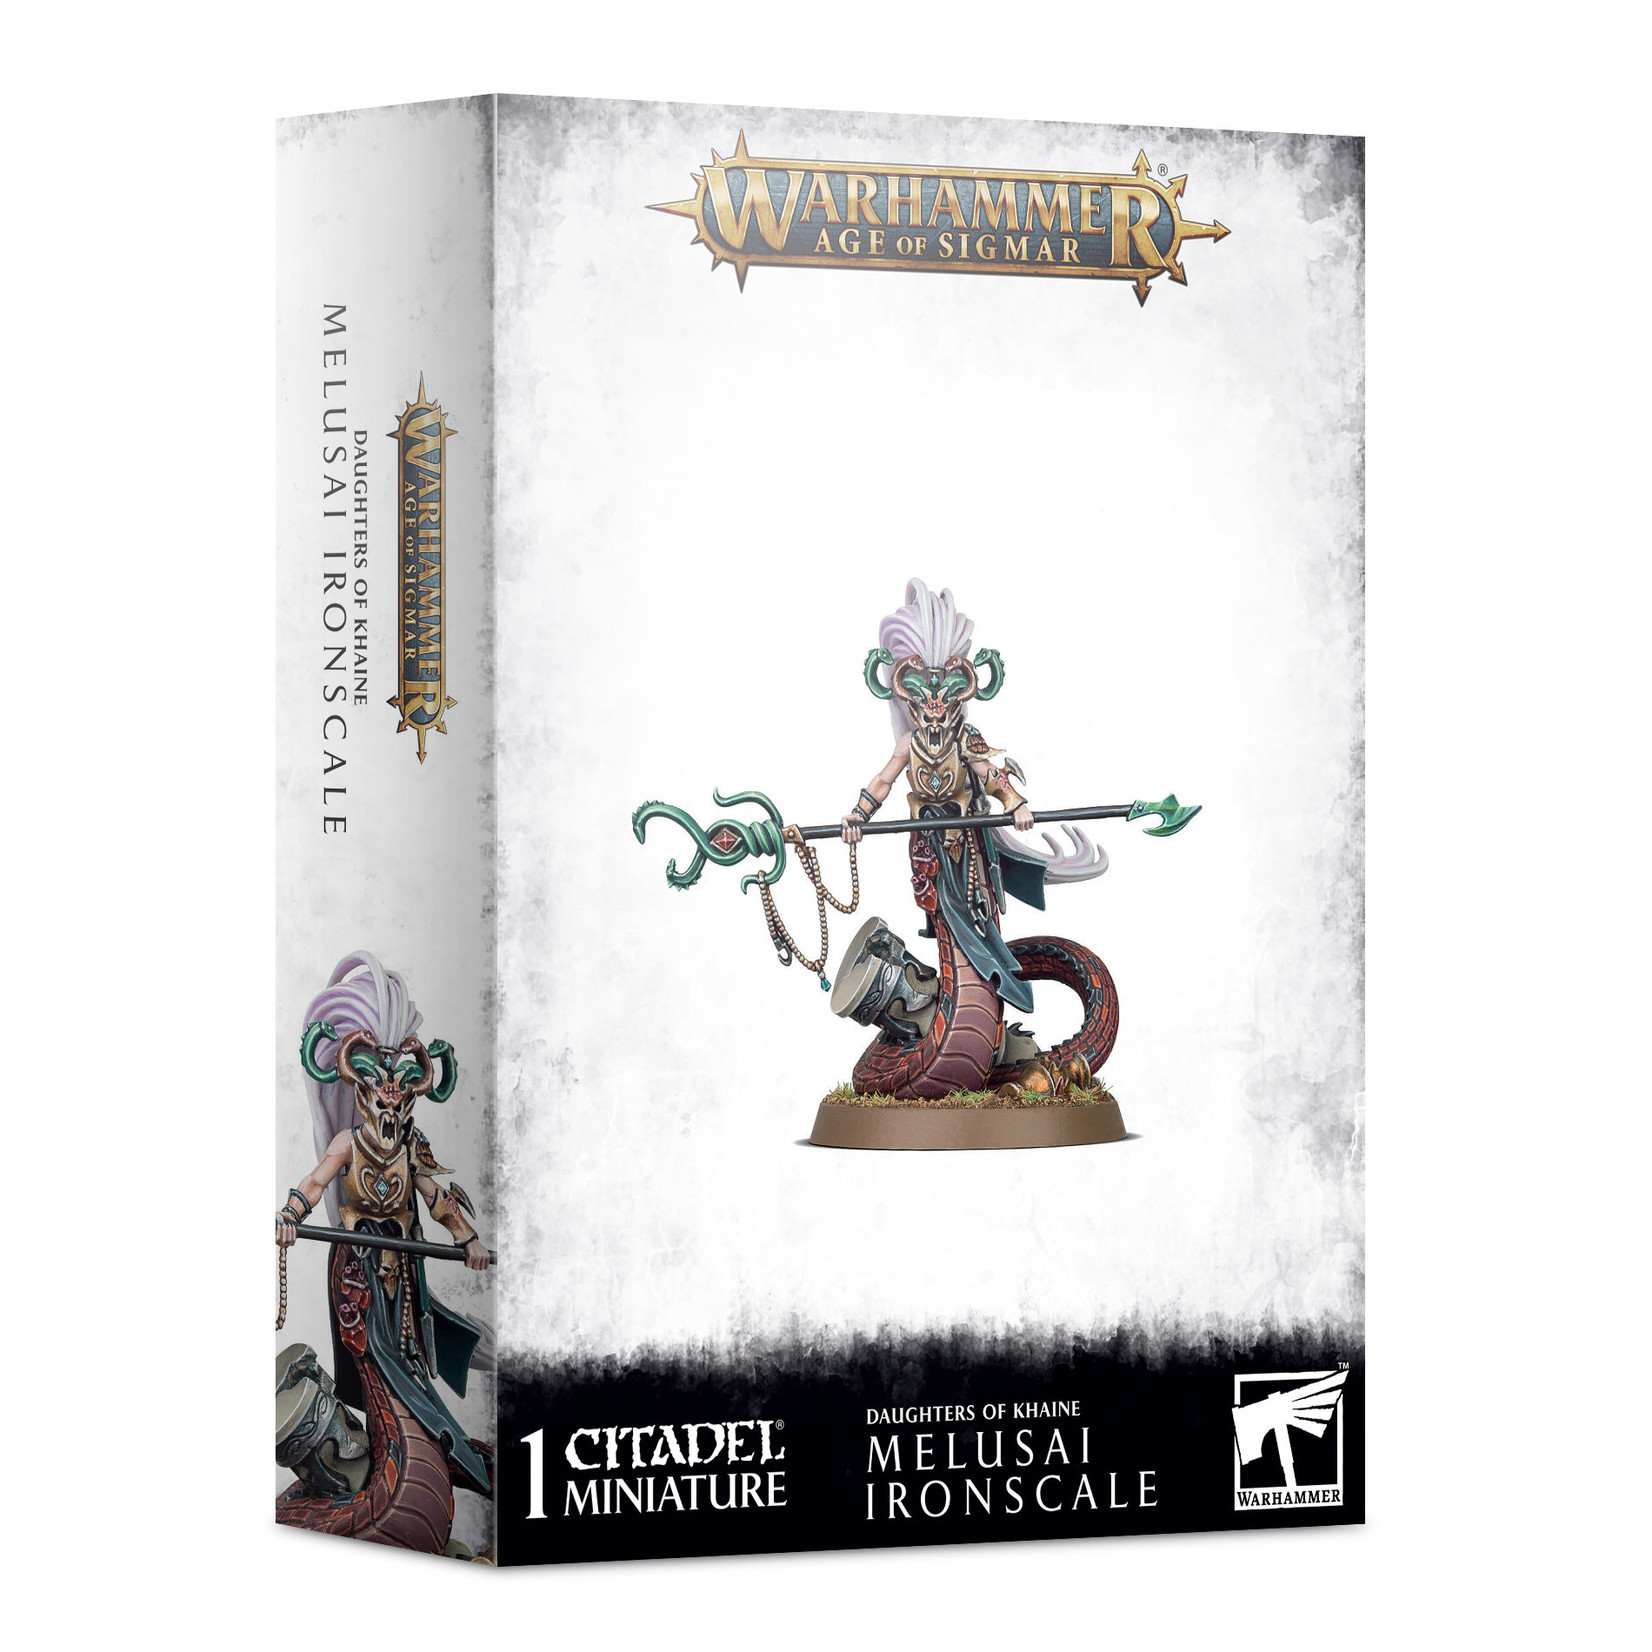 Age of Sigmar Daughters of Khaine - Melusai Ironscale